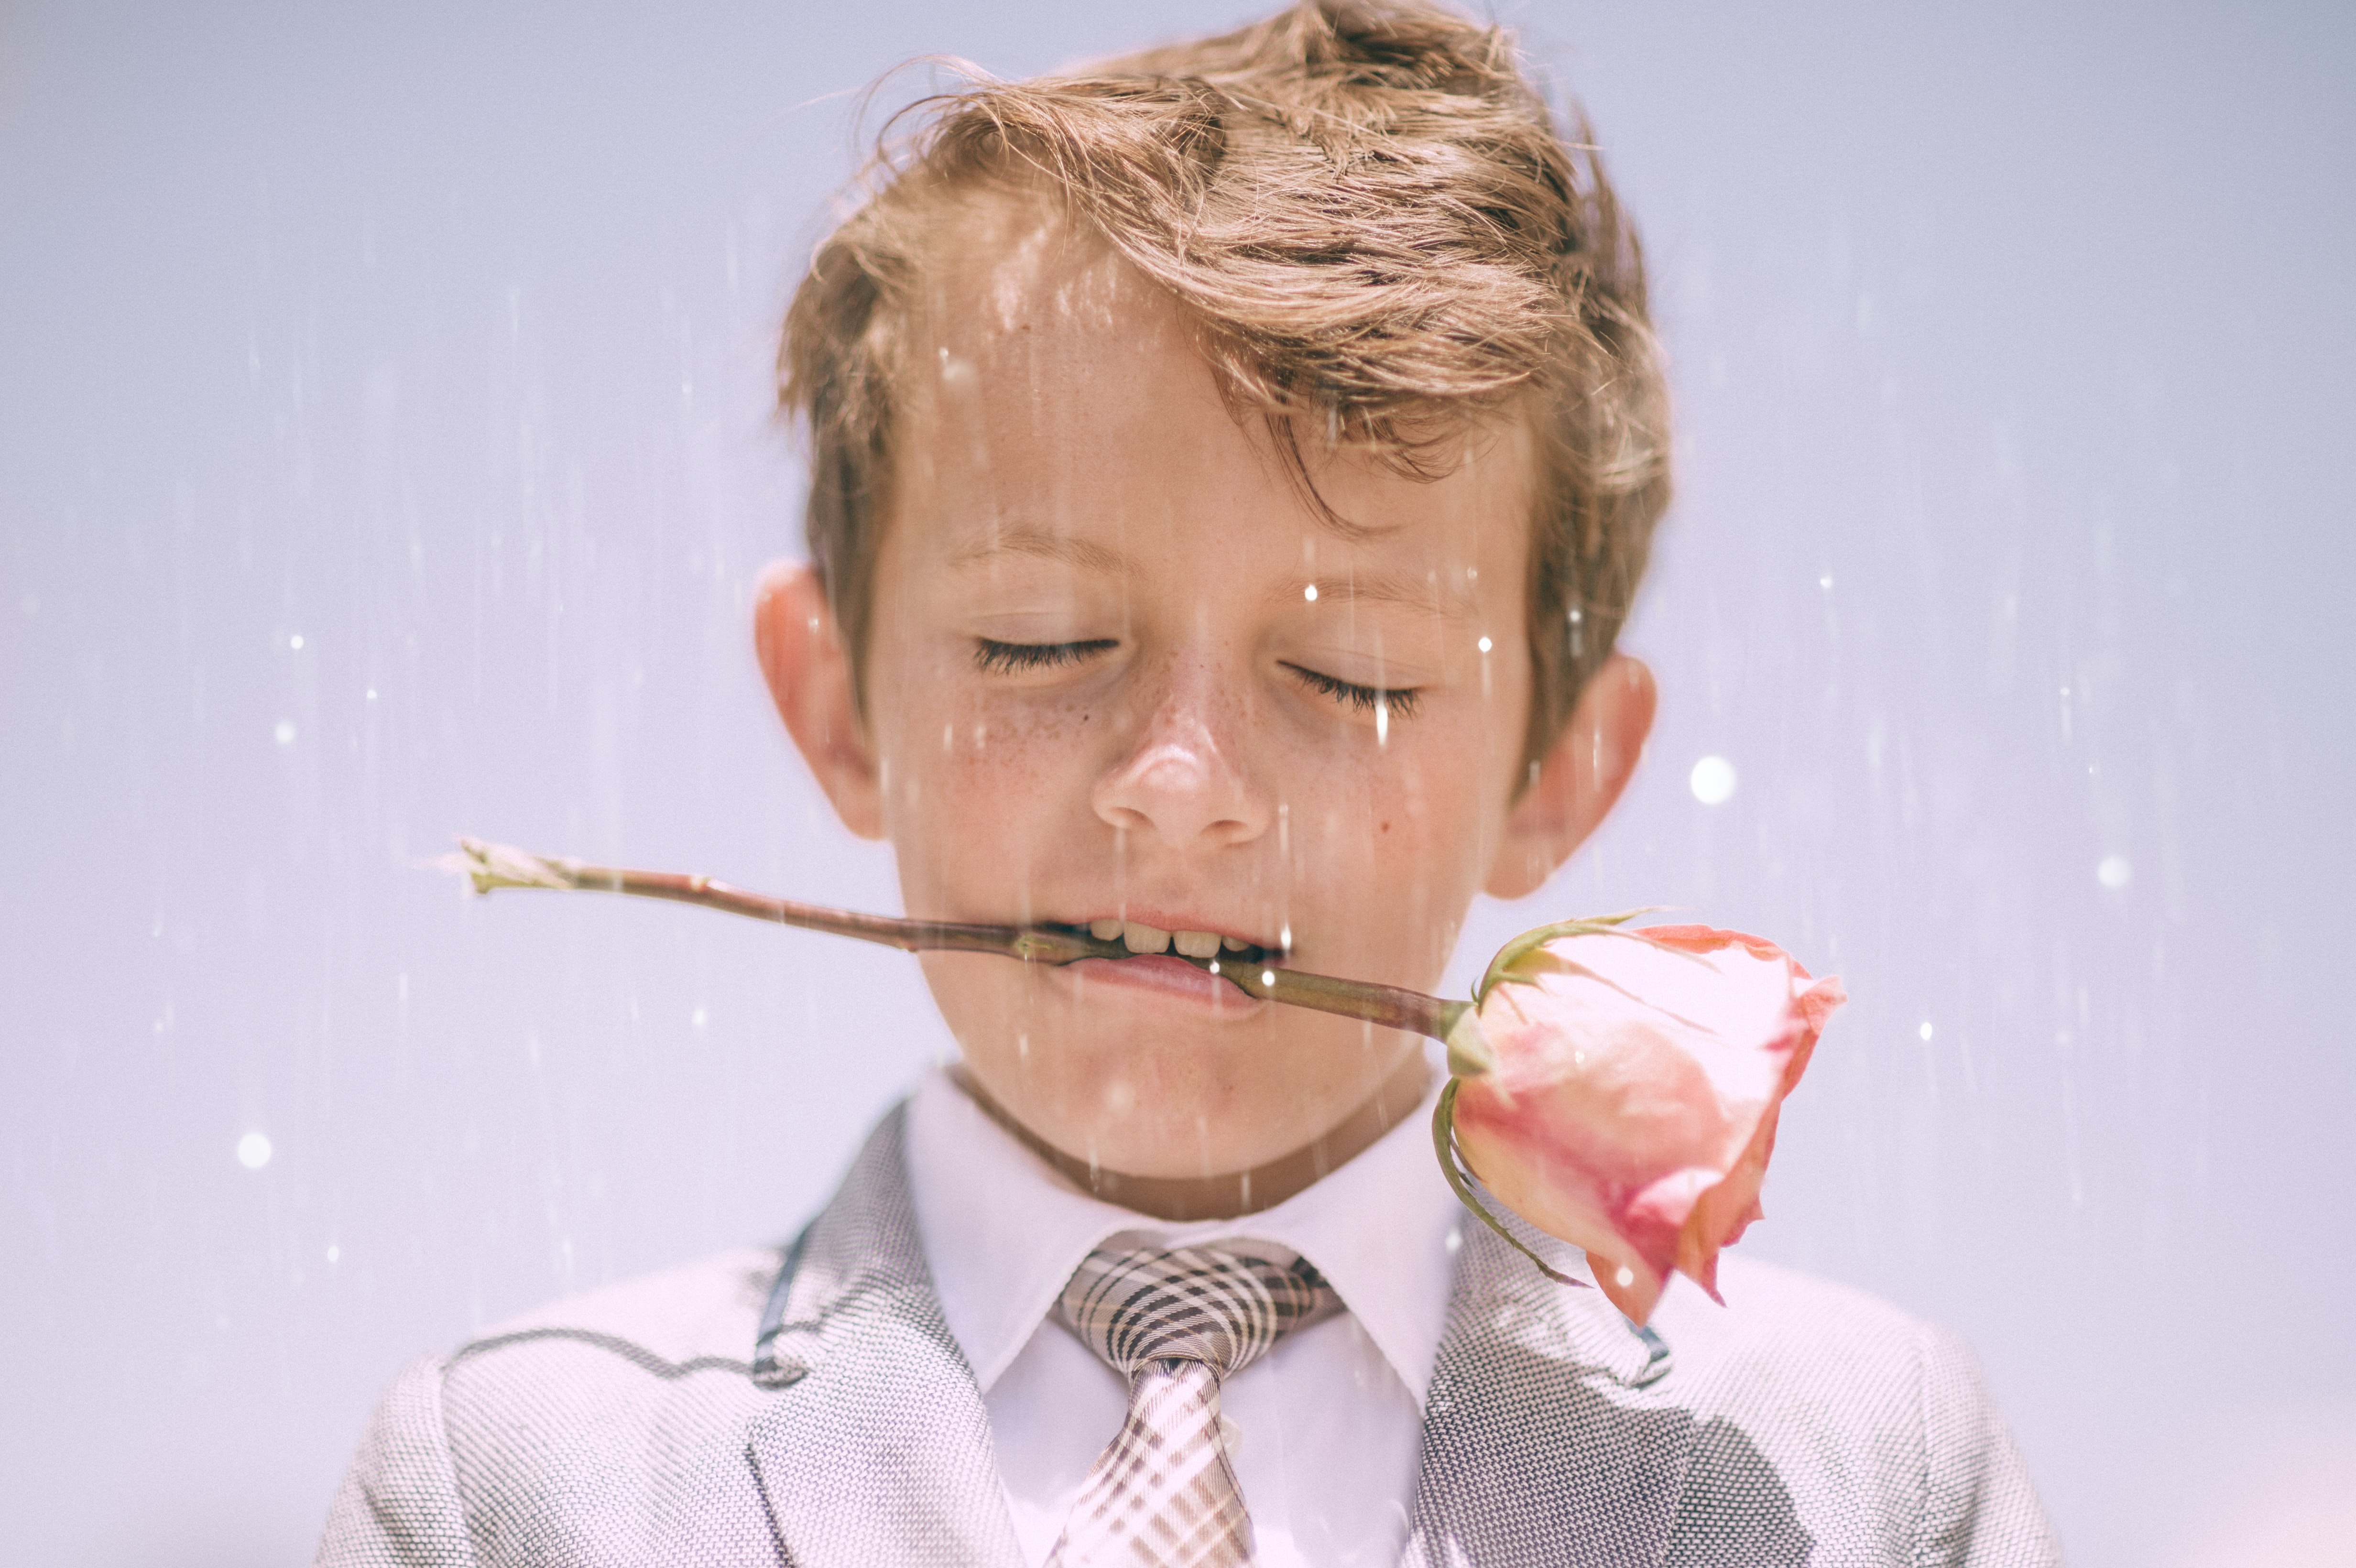 boy biting stem of pink rose